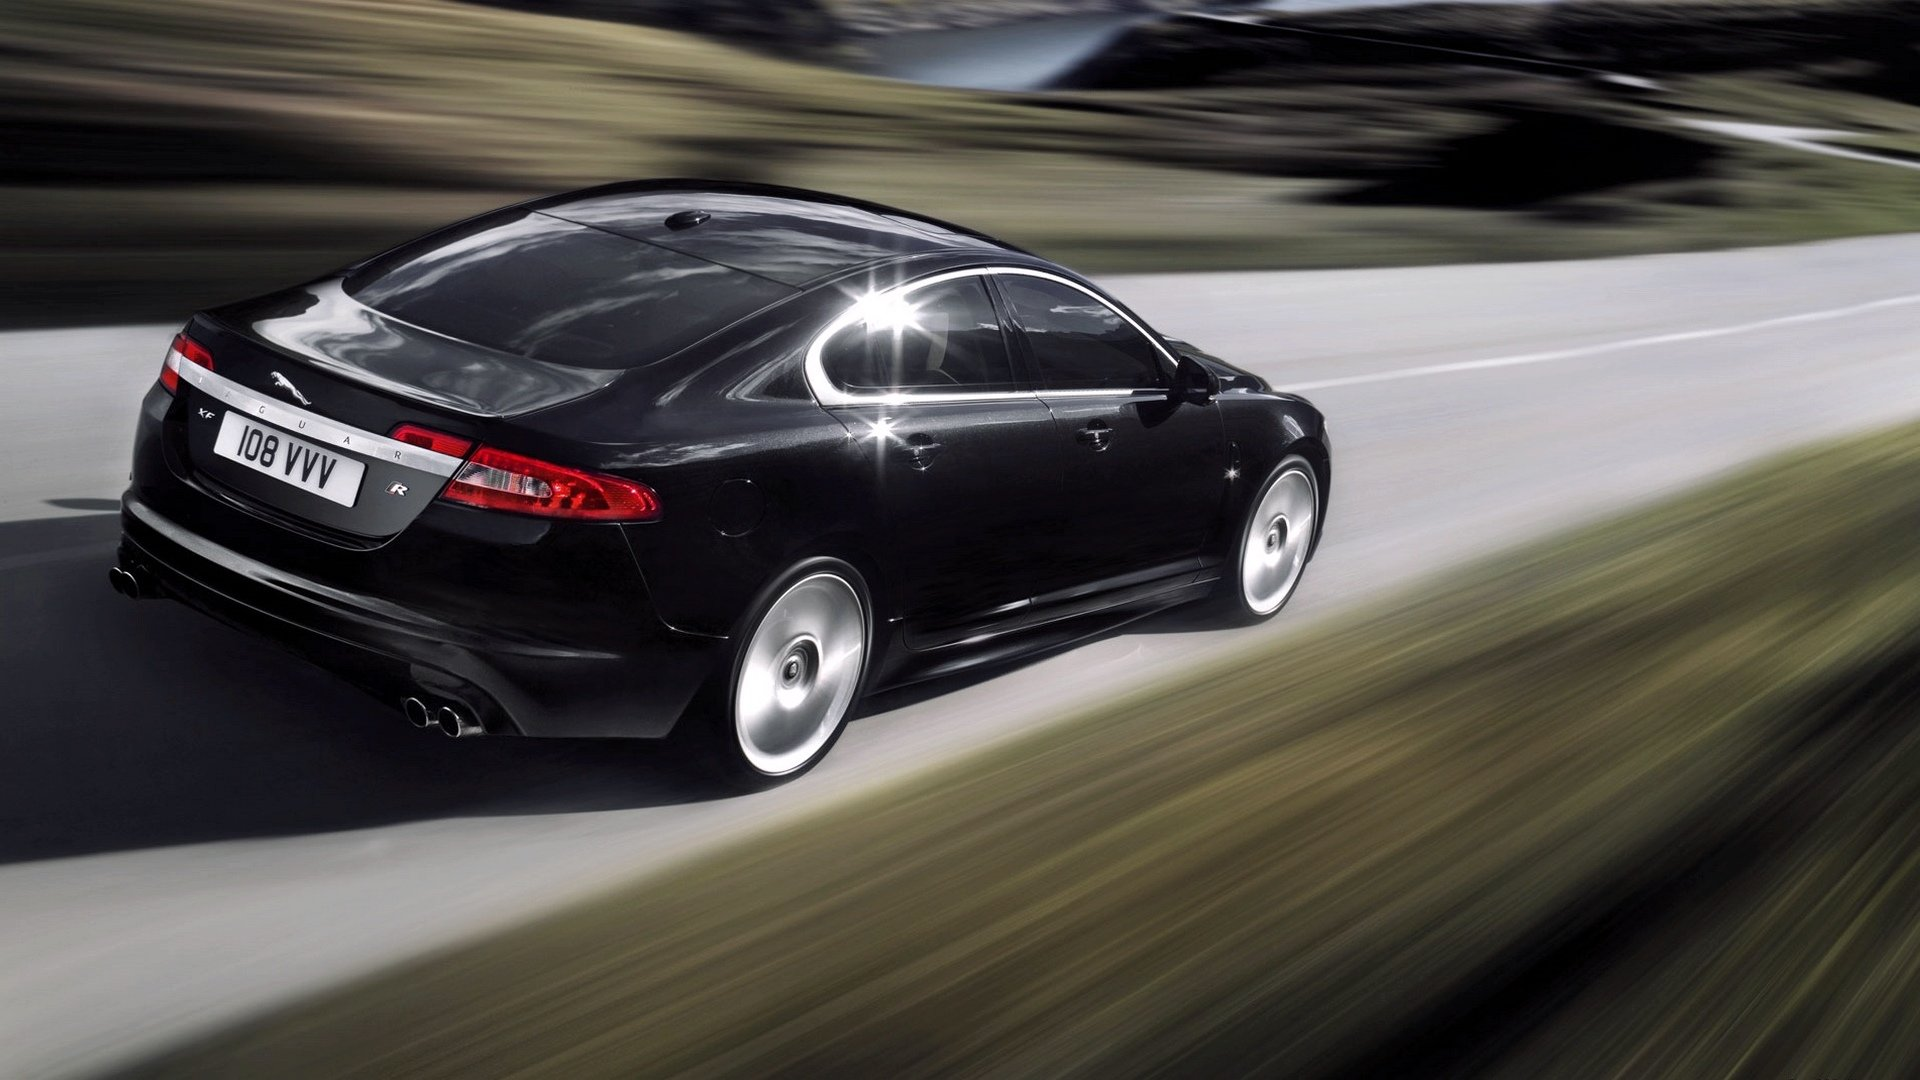 Best Jaguar Car Wallpaper Id 398075 For High Resolution Full Hd Pc